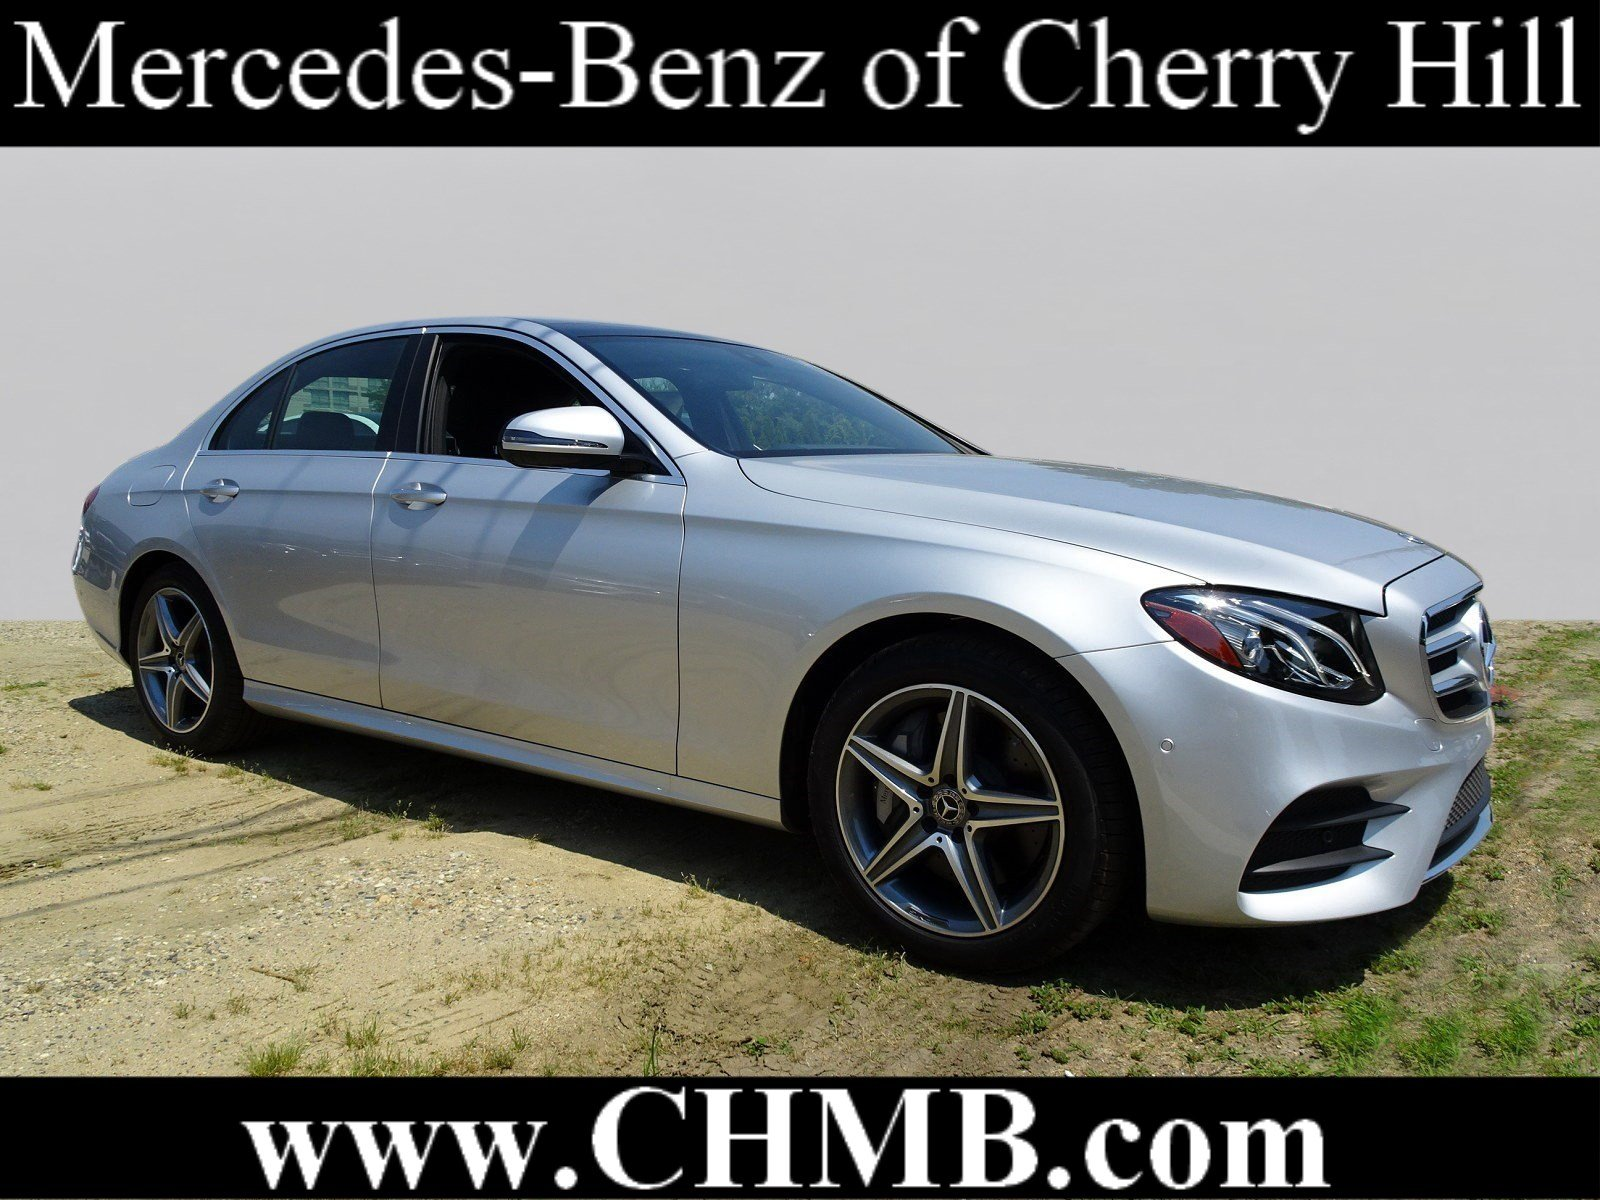 benz some mercedes personal below great all on deals qeba and to lease freebies car offers contract hire cars the vehicles view gla kelowna click leasing